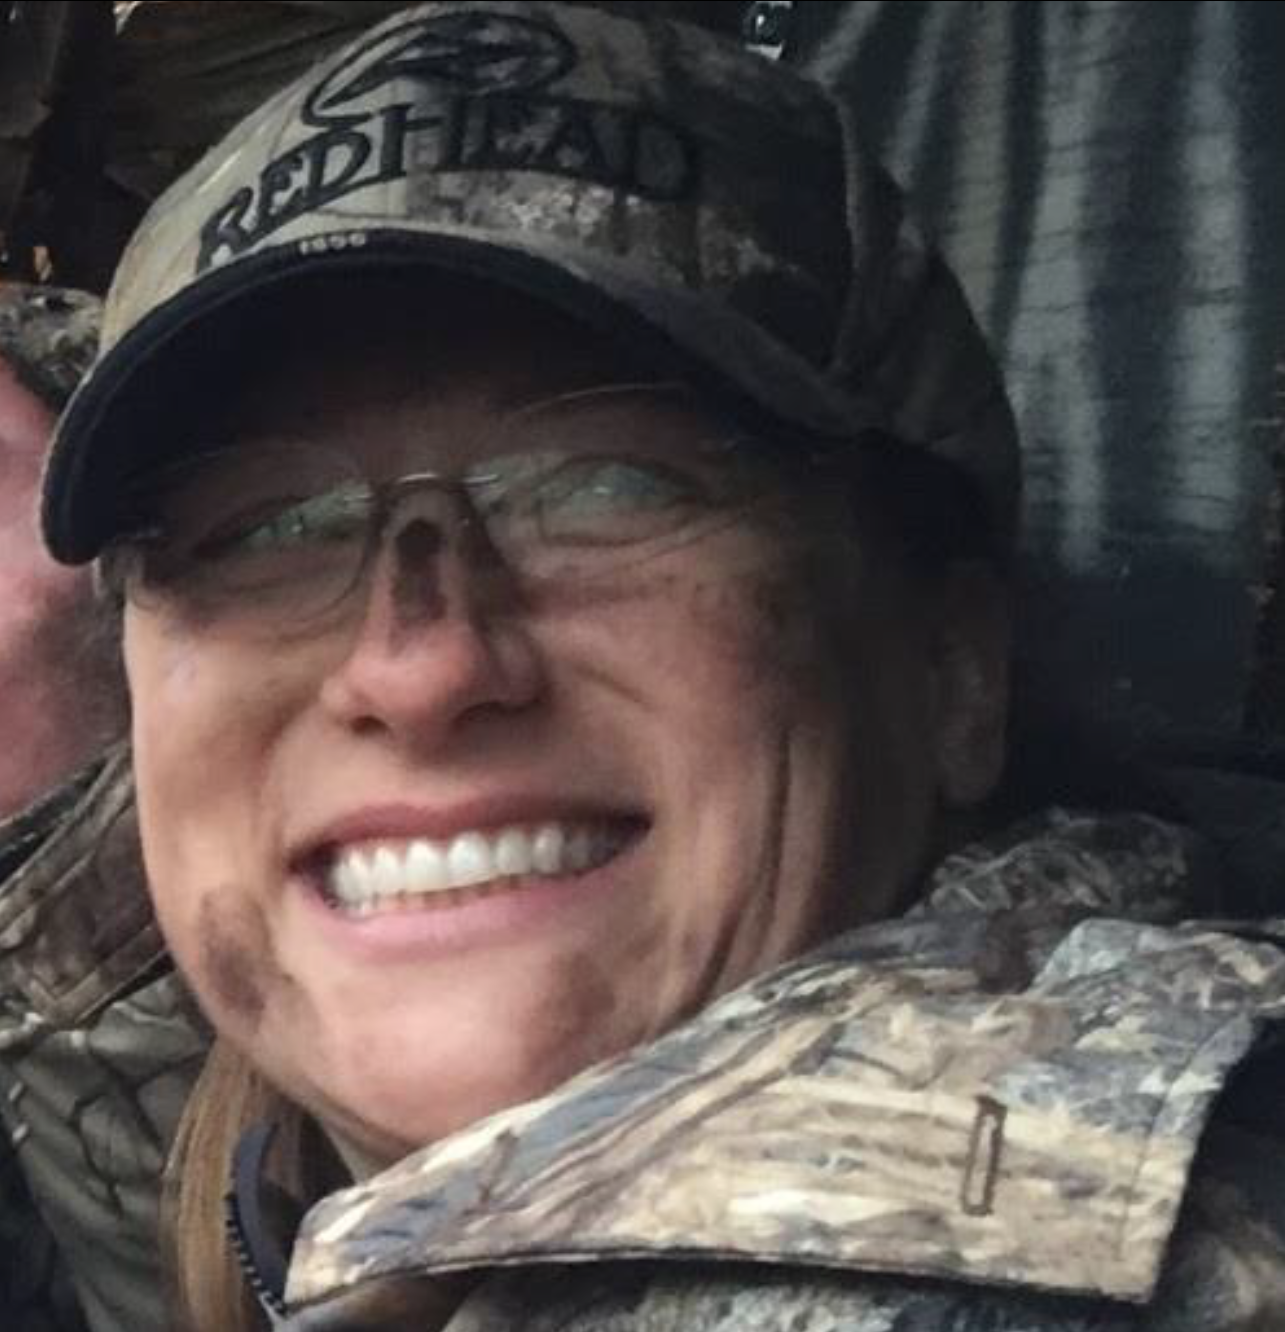 A close-up portrait of a smiling young woman wearing camouflage gear and a camouflage hat.